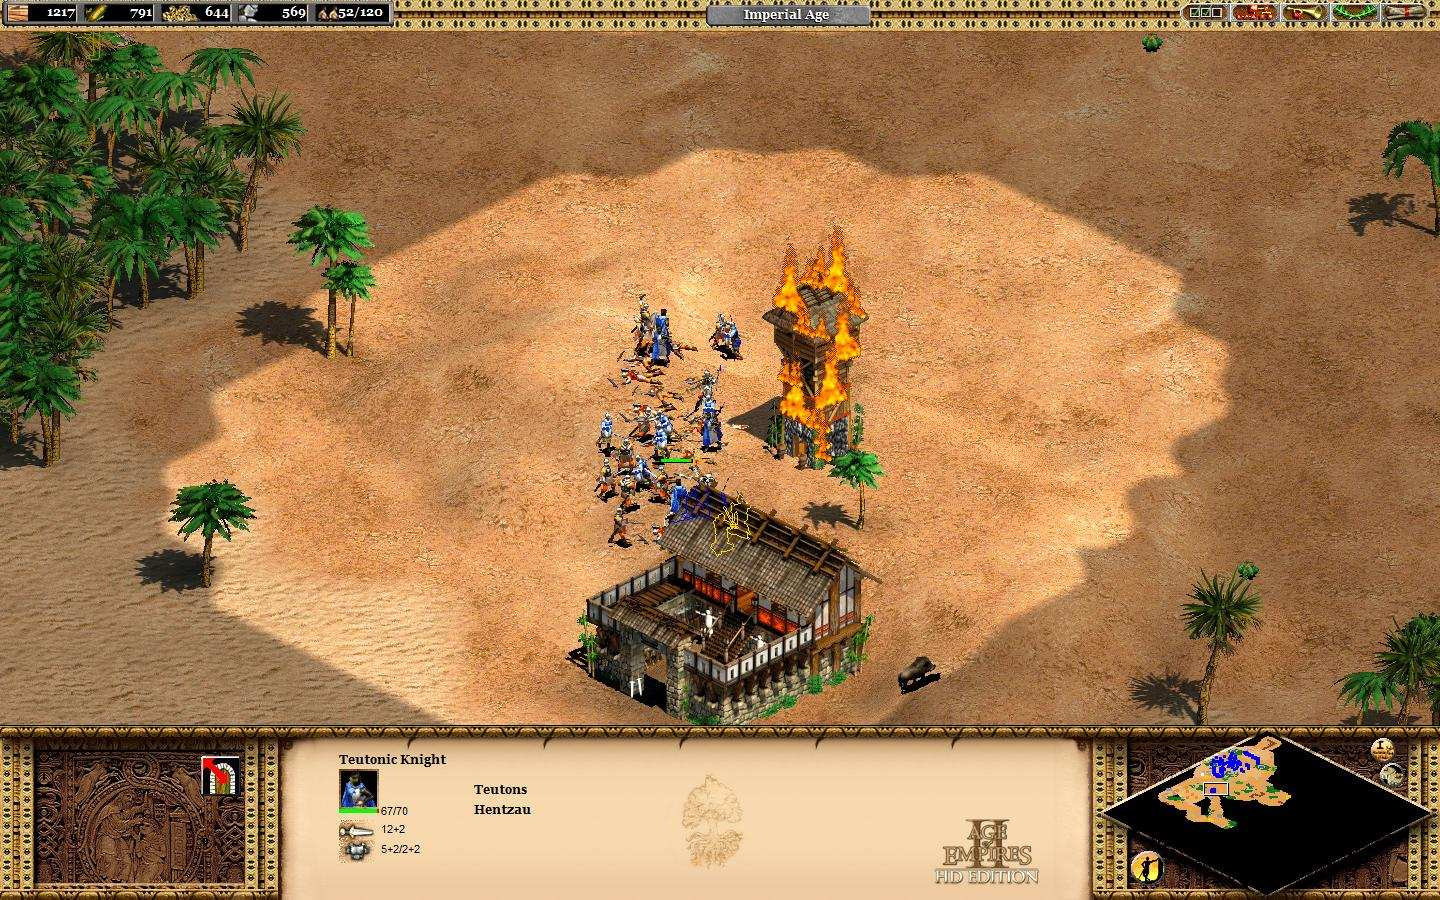 age of empires 2 hd multiplayer crack lan